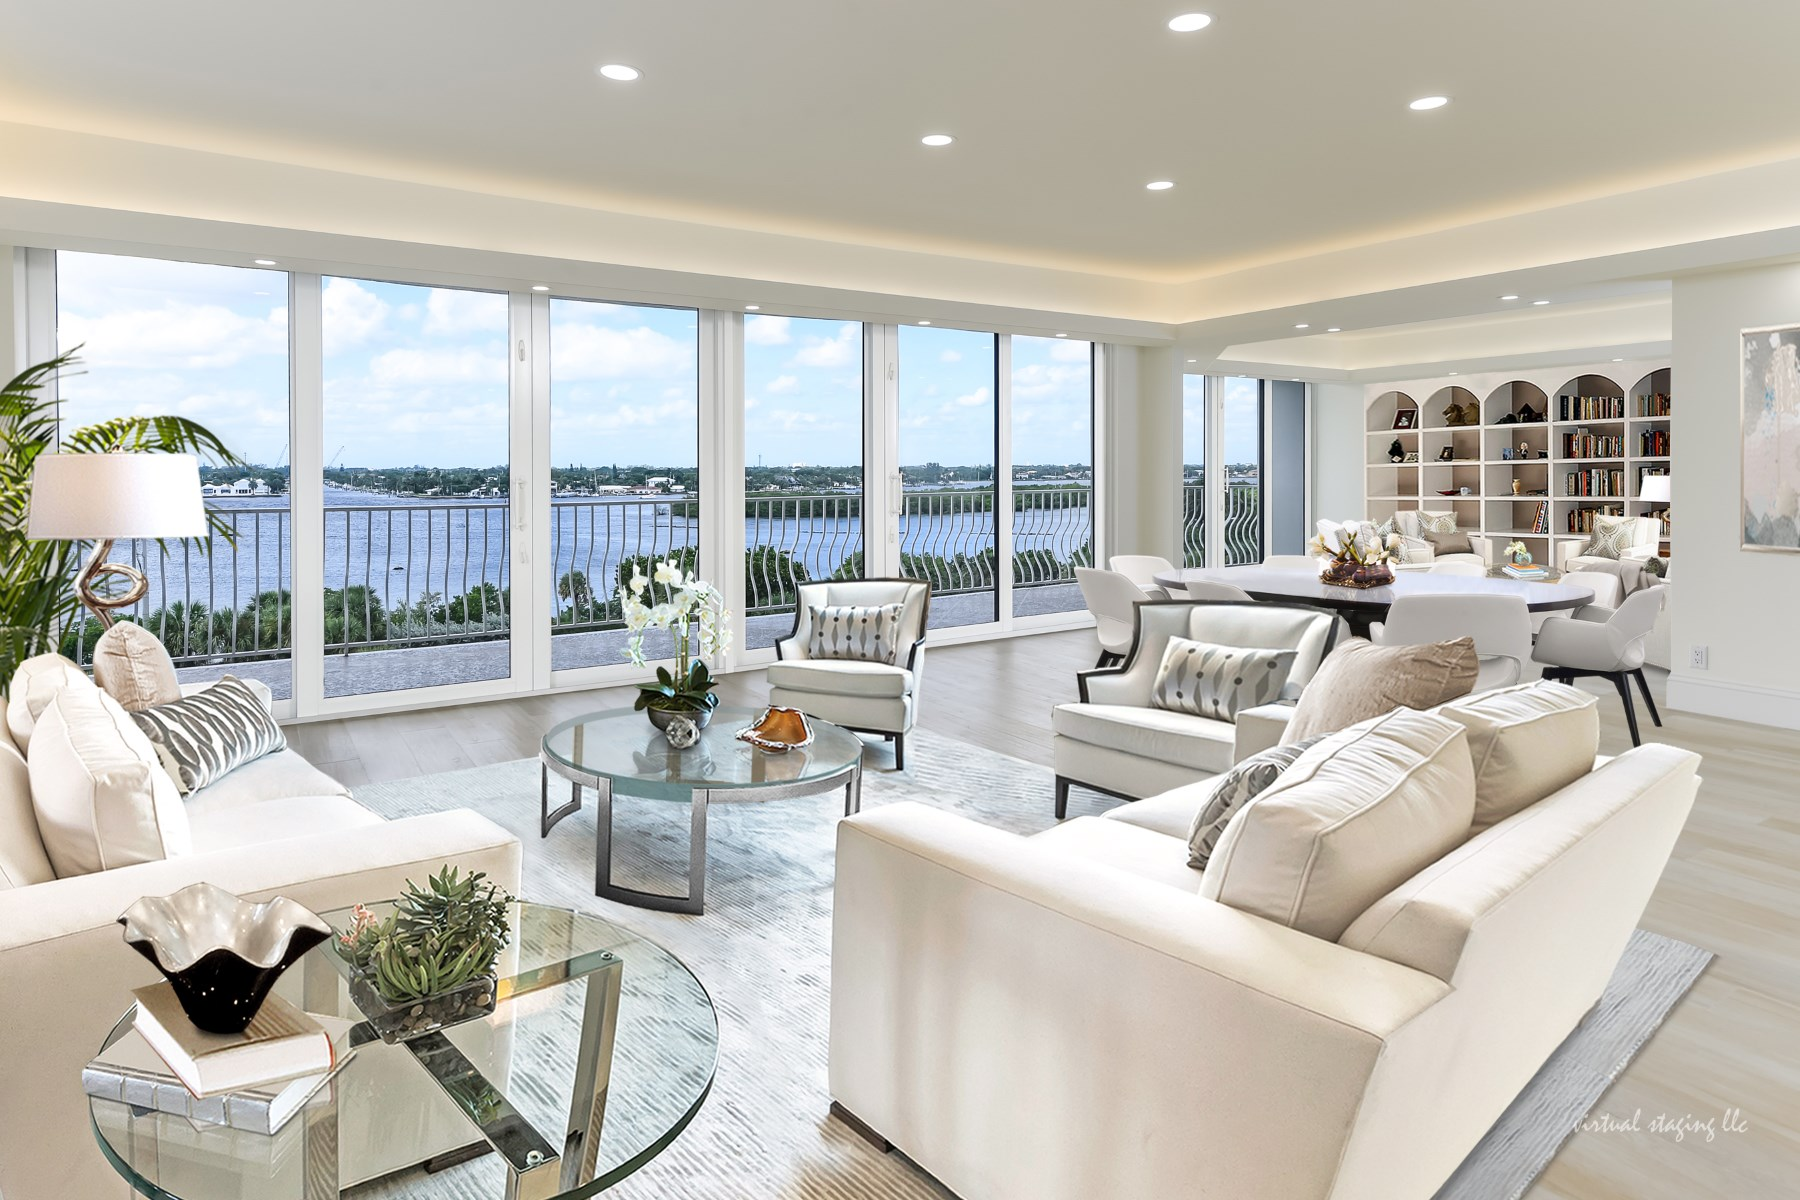 Condominium for Sale at Stunning Sloan's Curve 2000 S Ocean Blvd 405S Palm Beach, Florida, 33480 United States